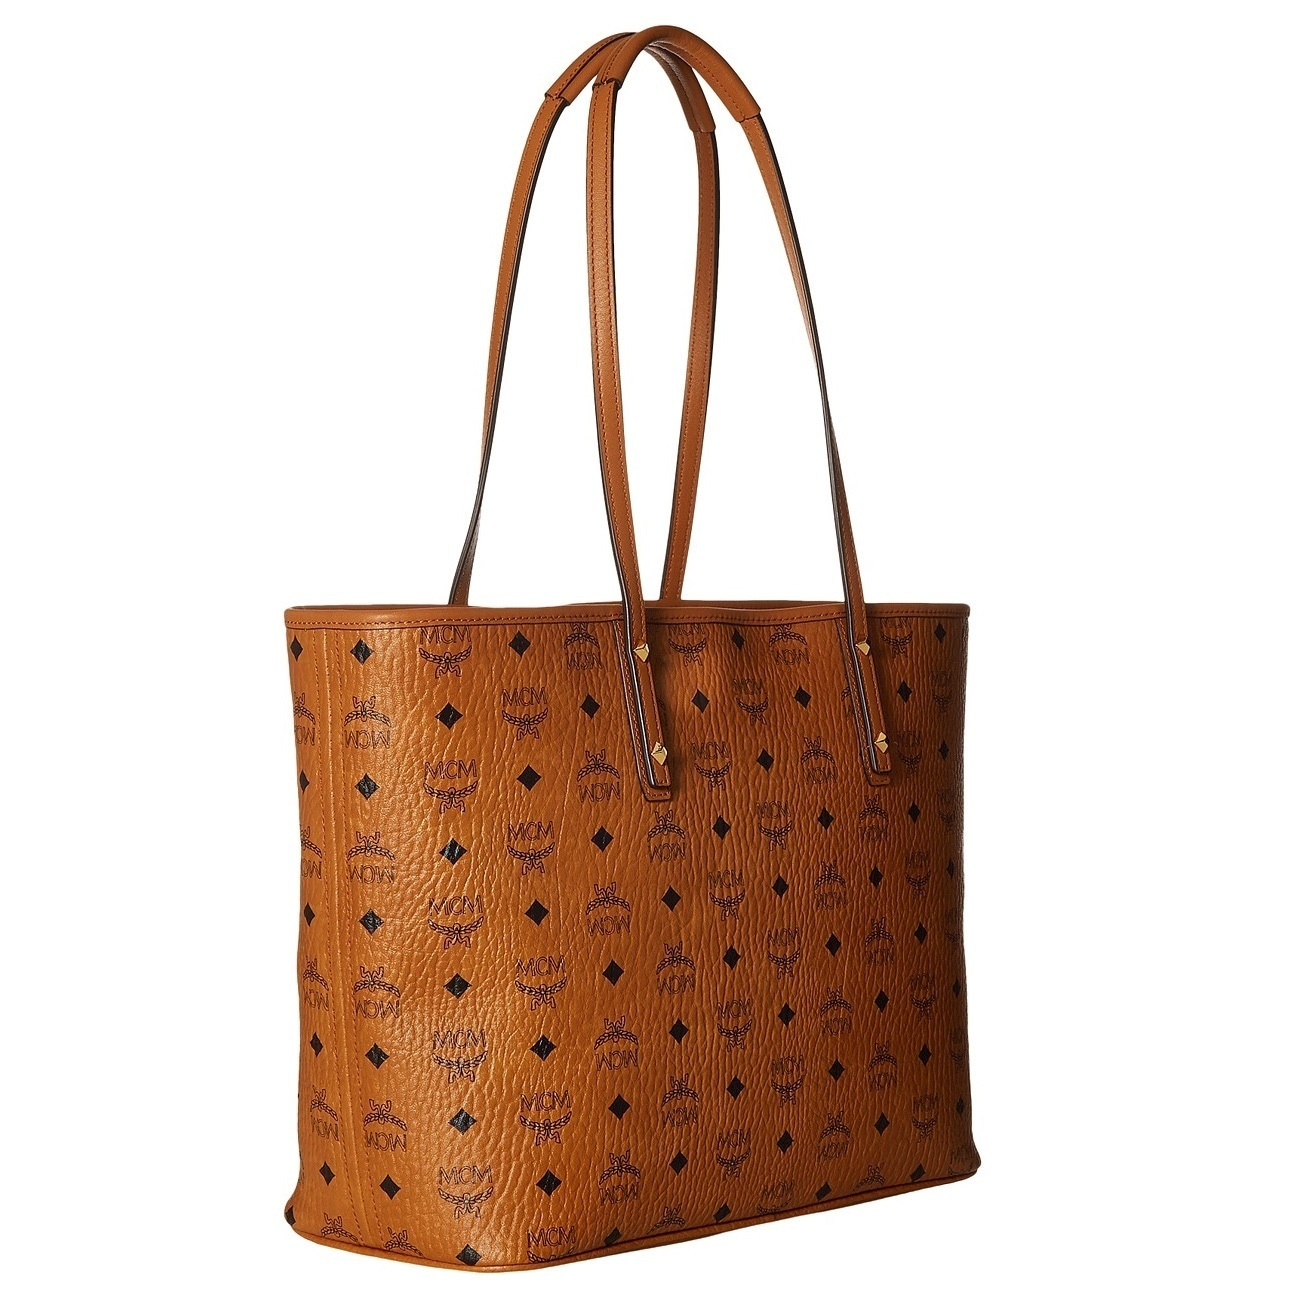 46a4d6e87 Shop MCM Anya Shopper Top Zip CognacTote Bag - On Sale - Free Shipping  Today - Overstock - 20024946